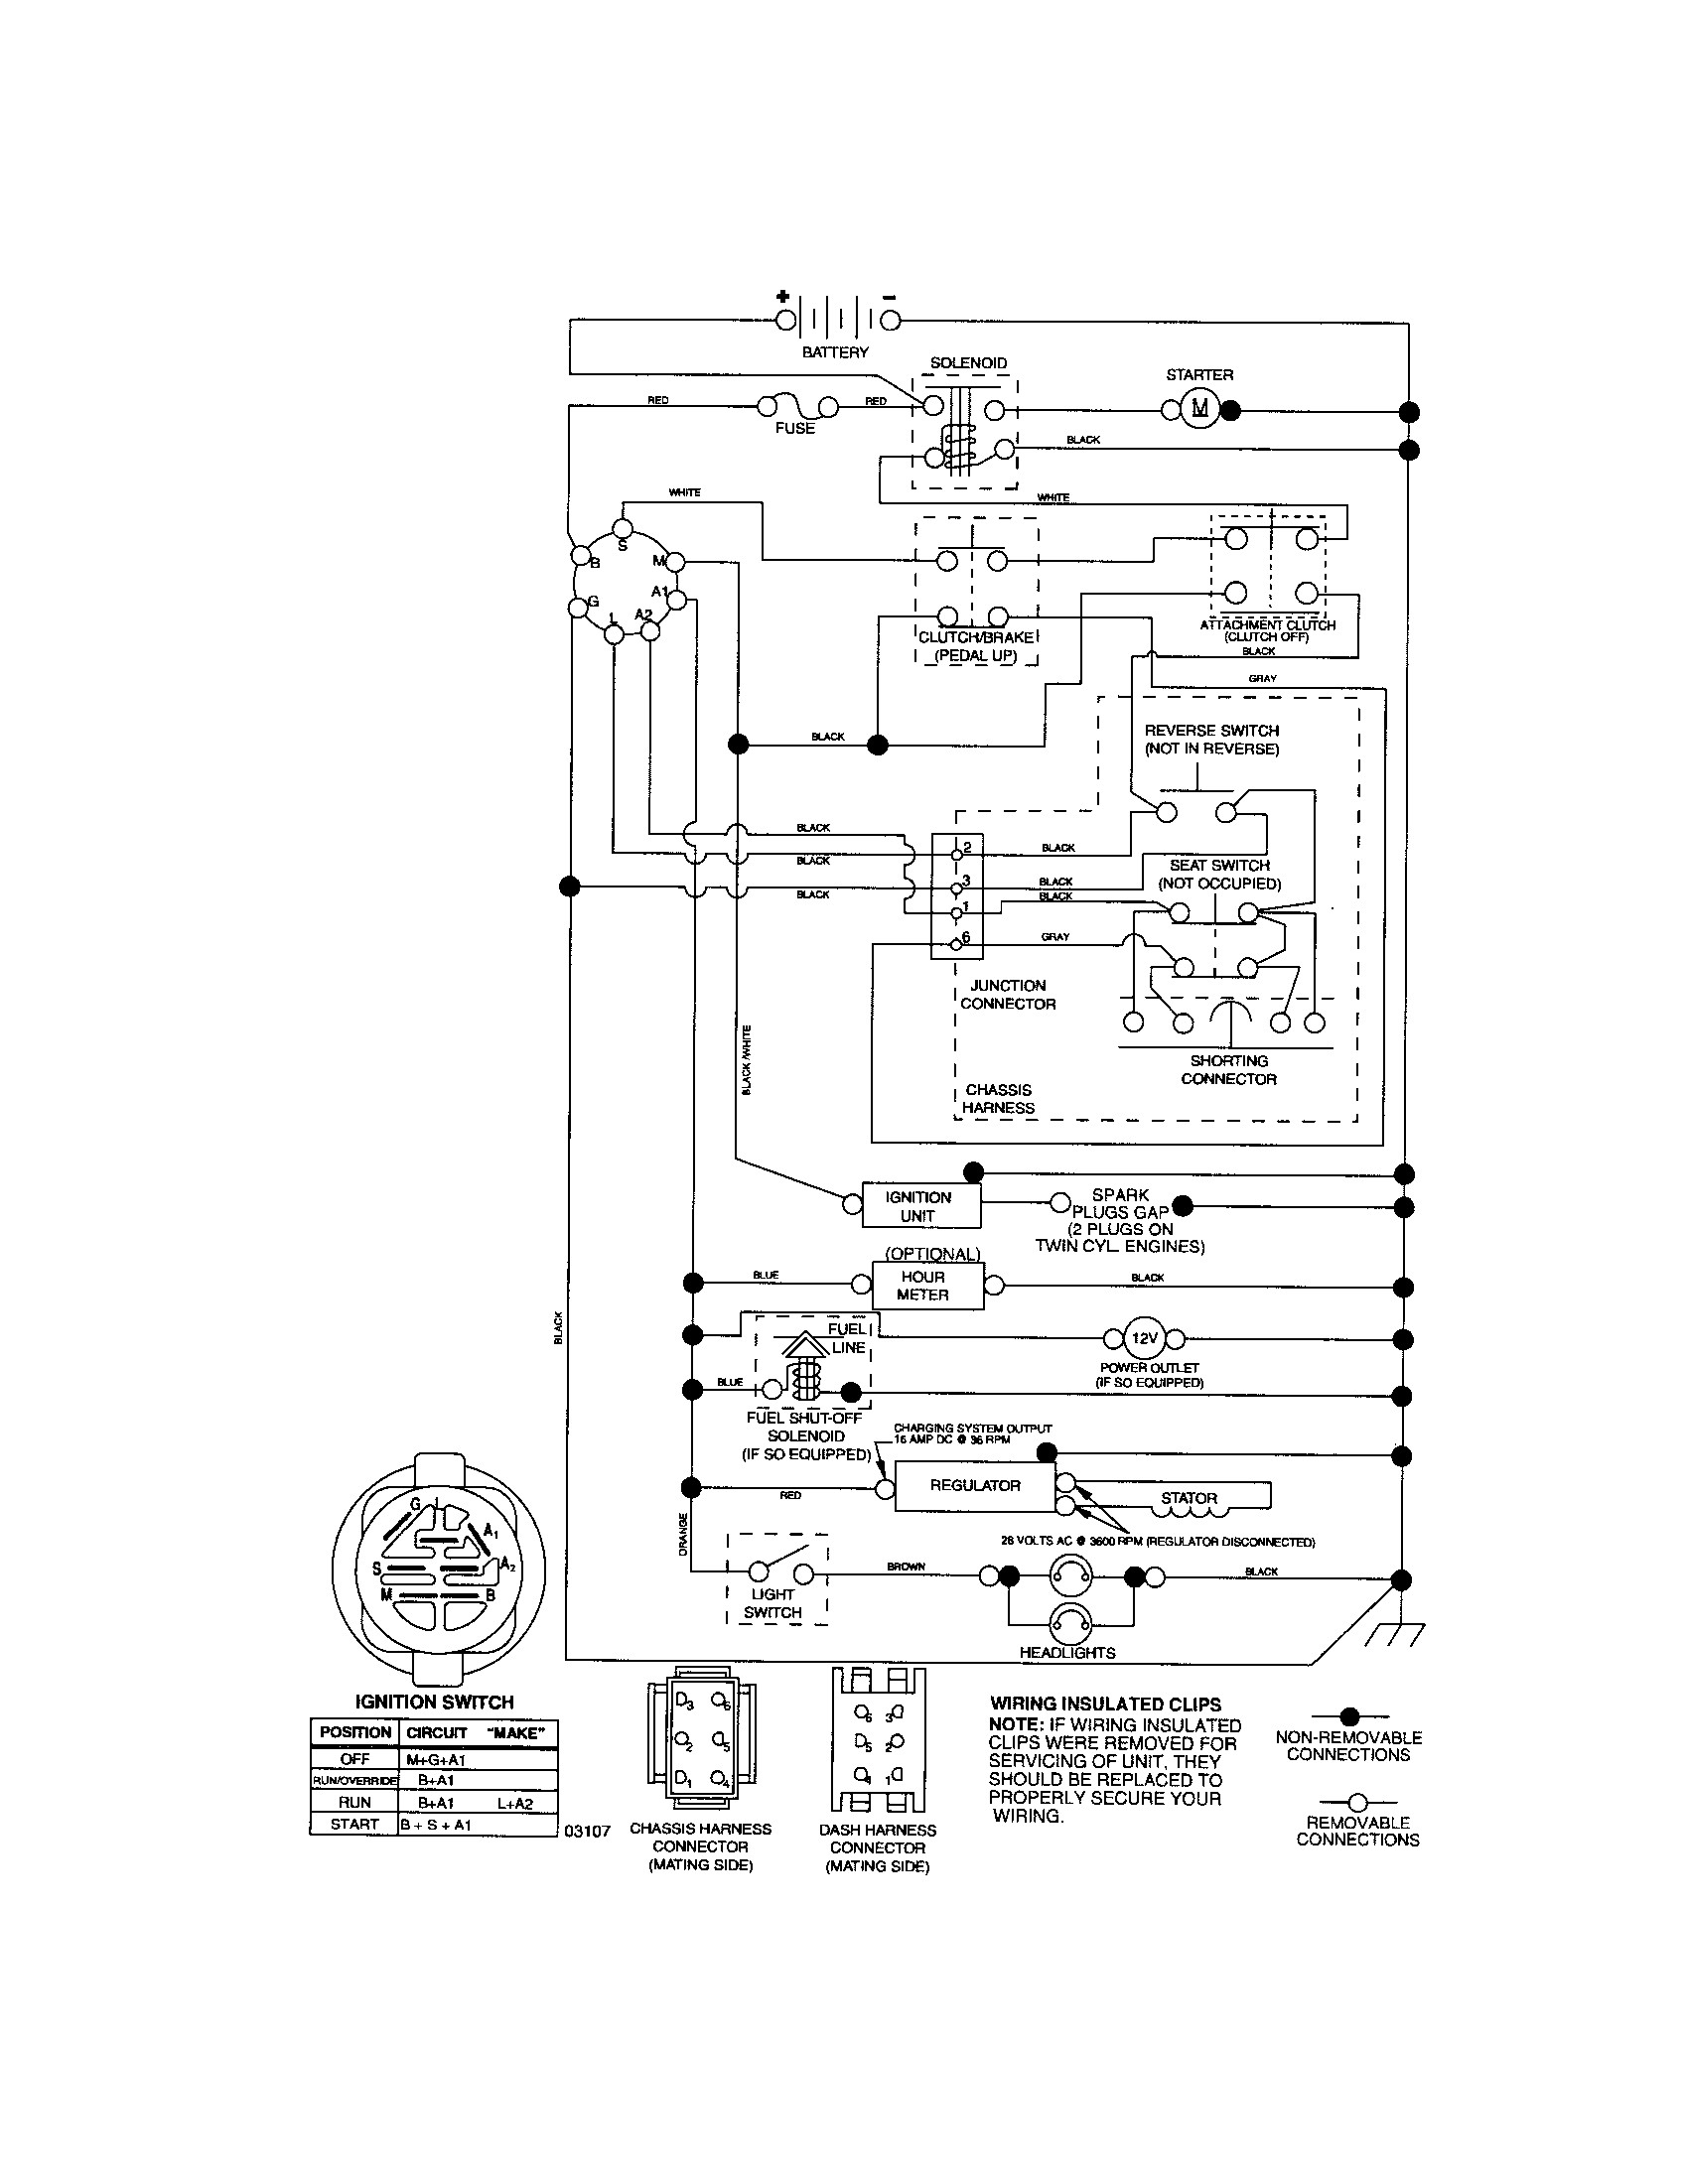 Sears battery charger wiring diagram library